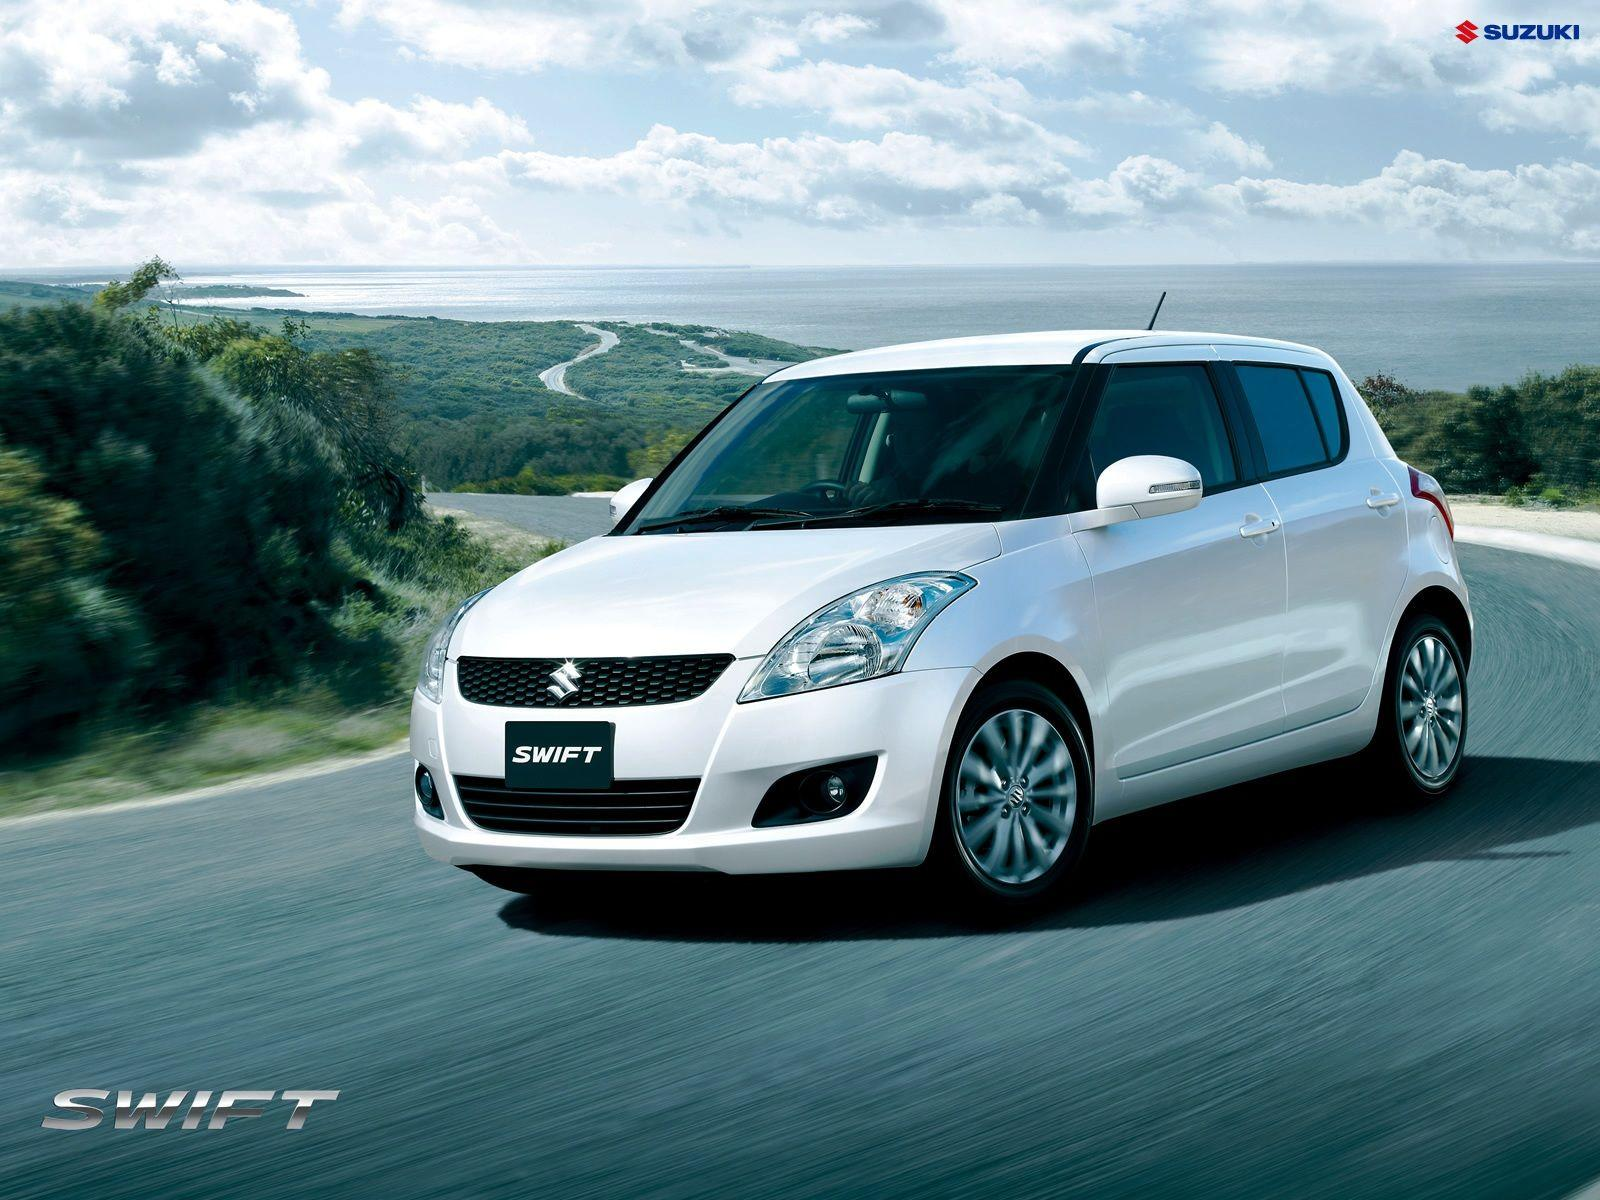 Swift Car Wallpapers Wallpaper Cave